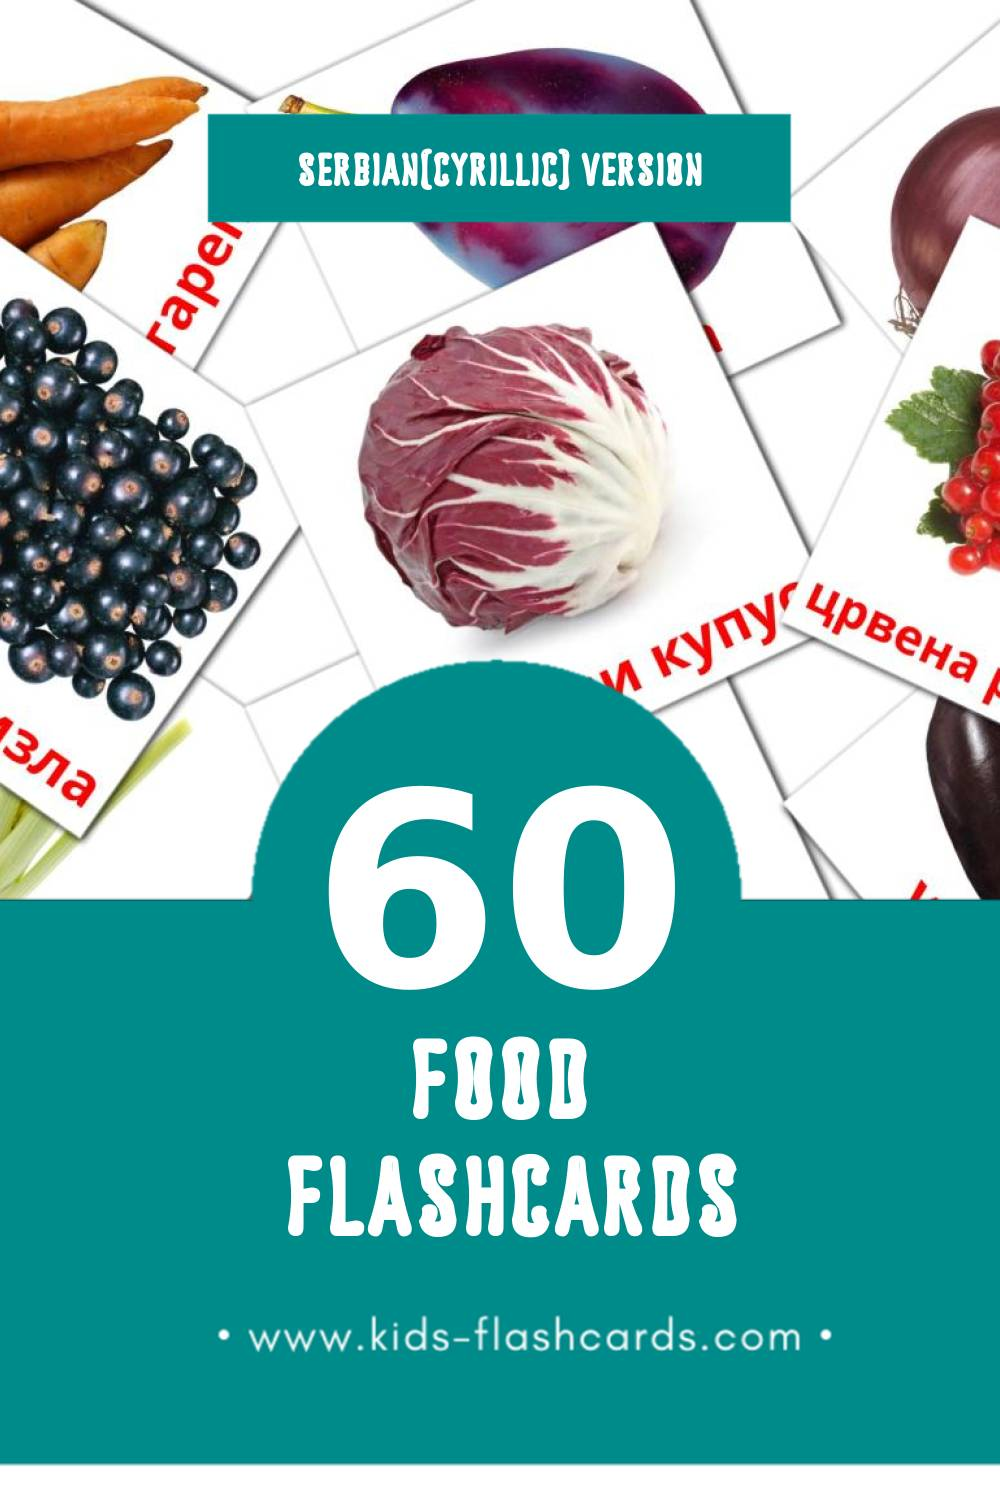 Visual Храна Flashcards for Toddlers (60 cards in Serbian(cyrillic))